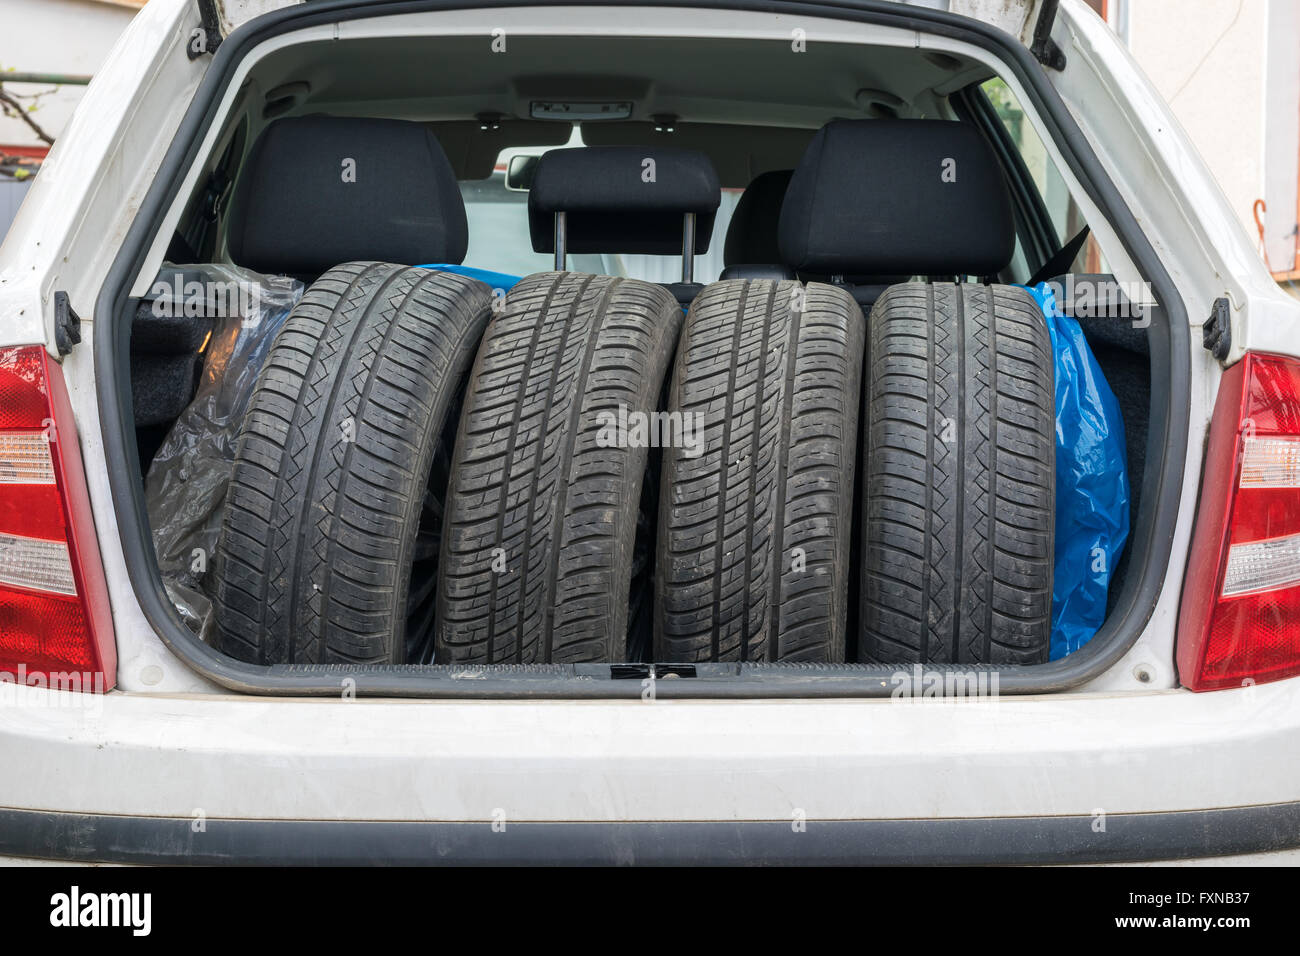 Tires prepared in trunk ready for seasonal changing, replacement - Stock Image